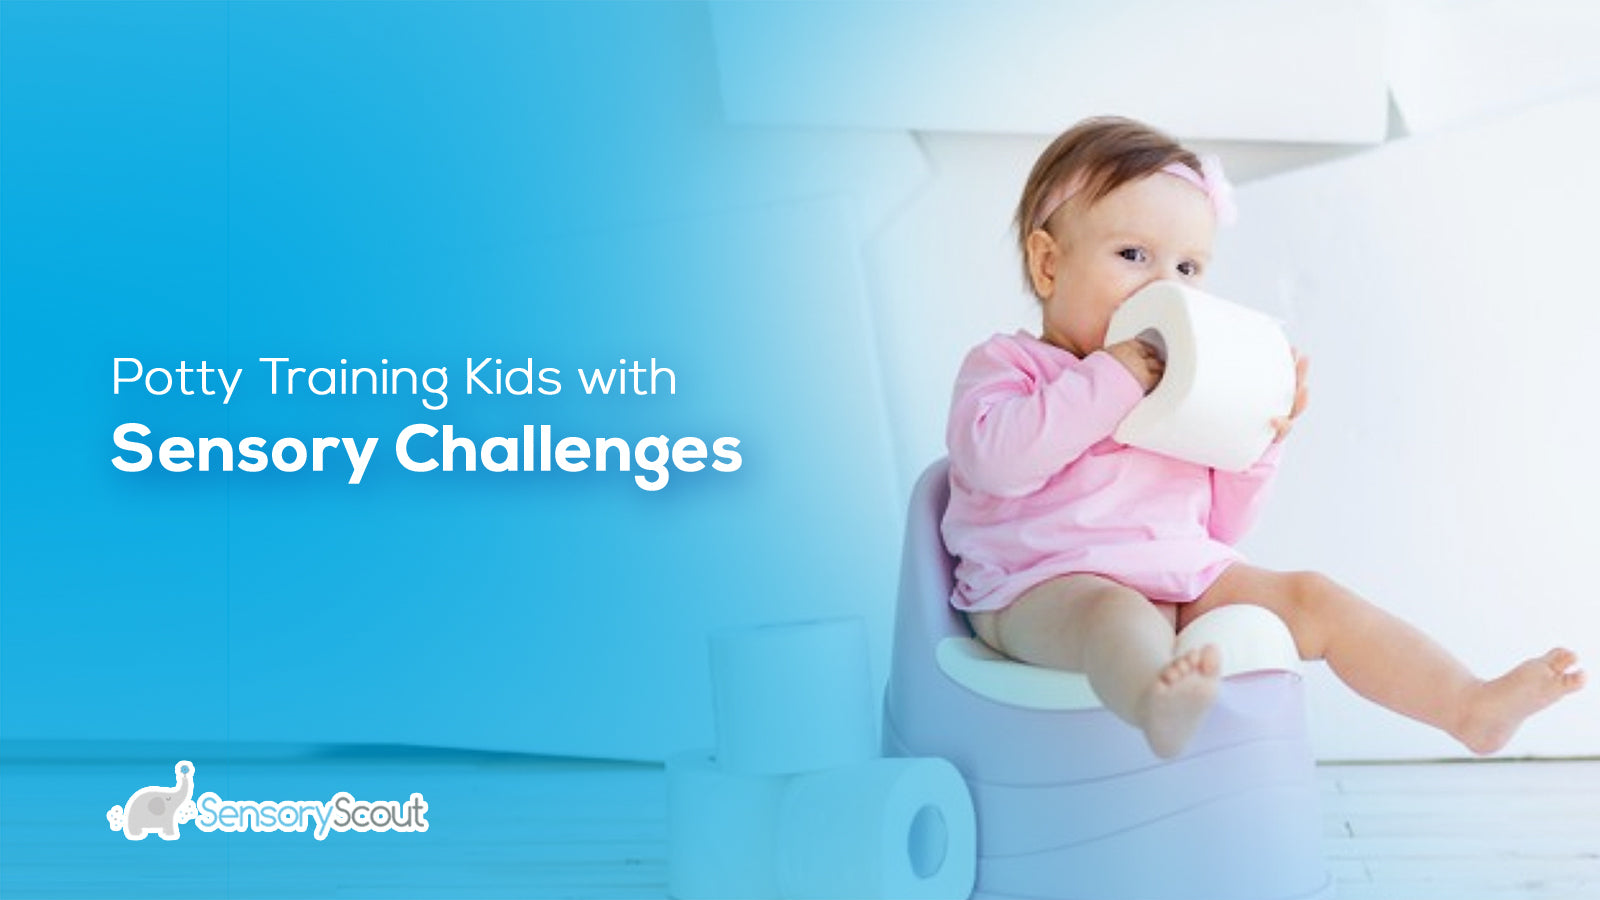 Potty Training Kids With Sensory Challenges